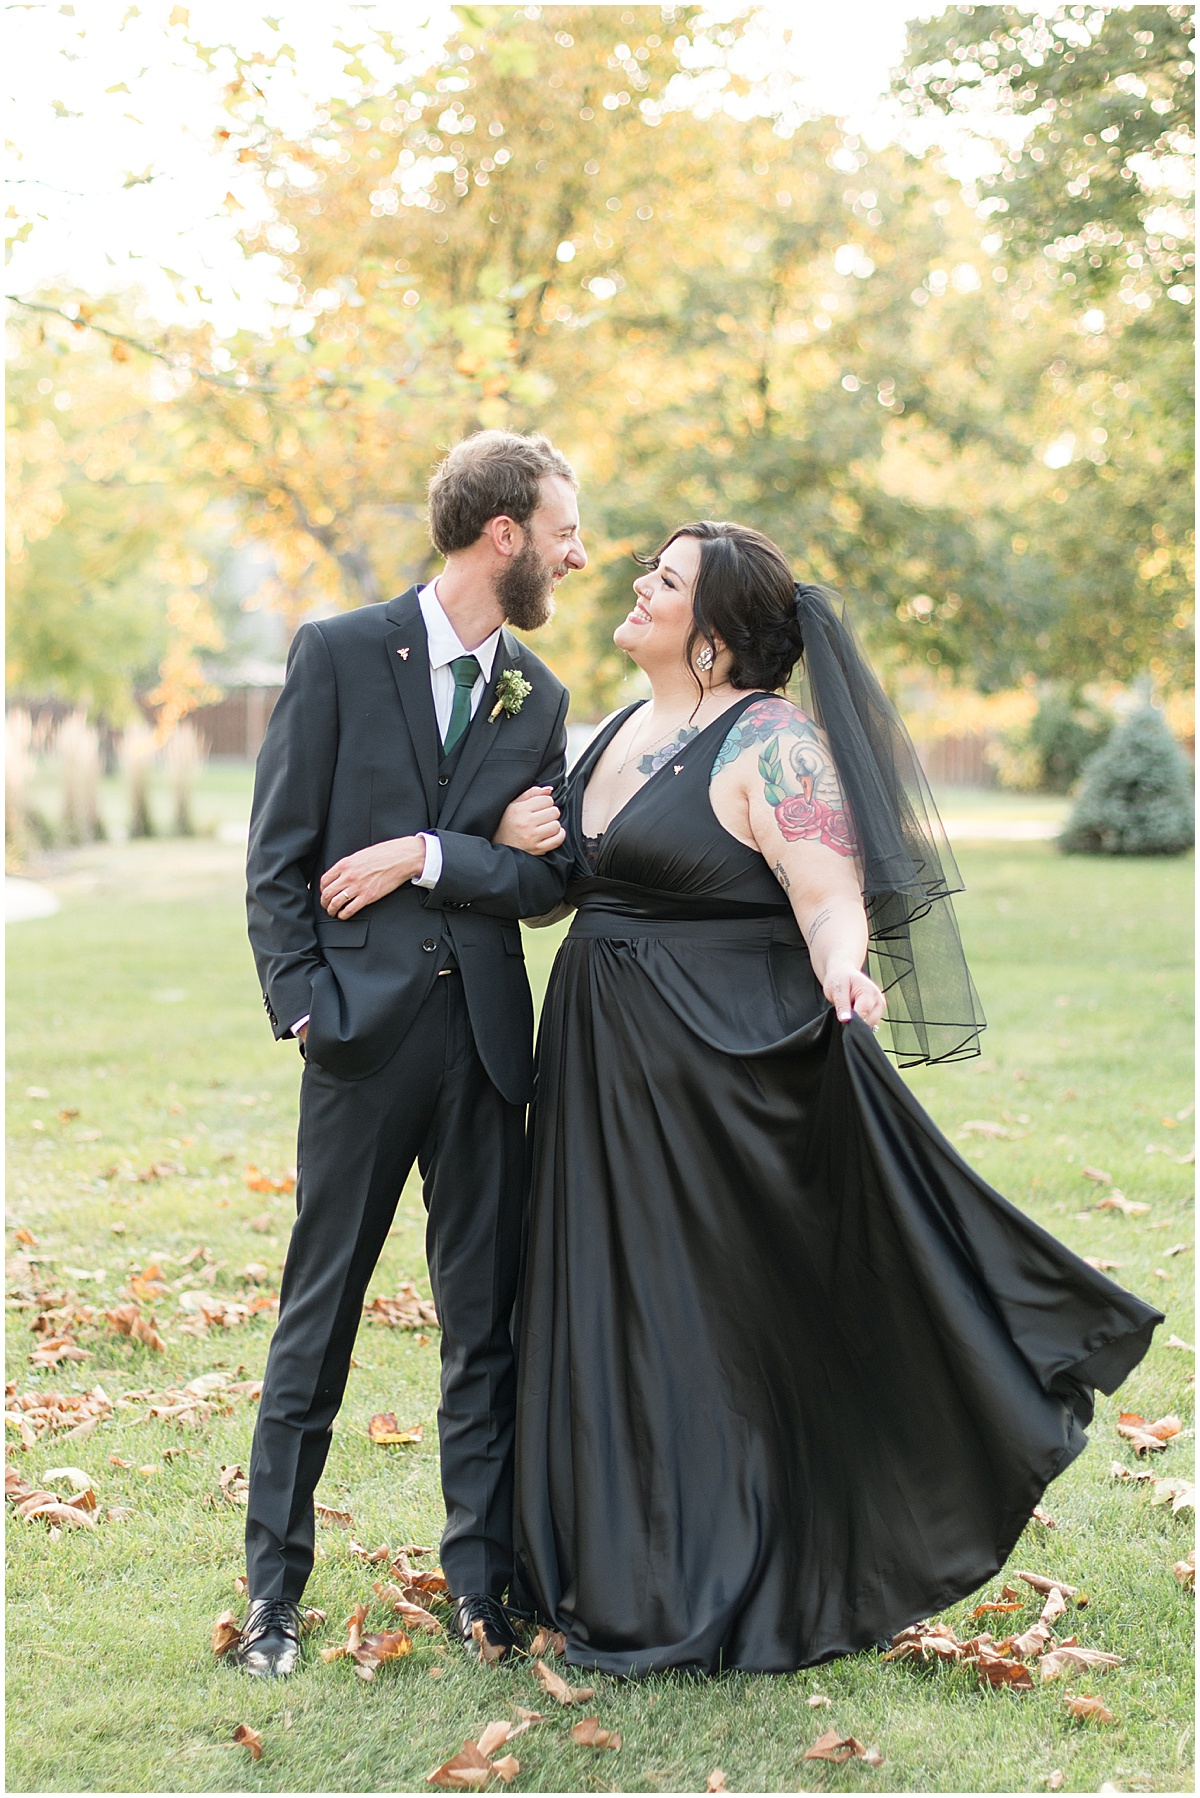 Bride and groom portraits with bride wearing a black wedding dress